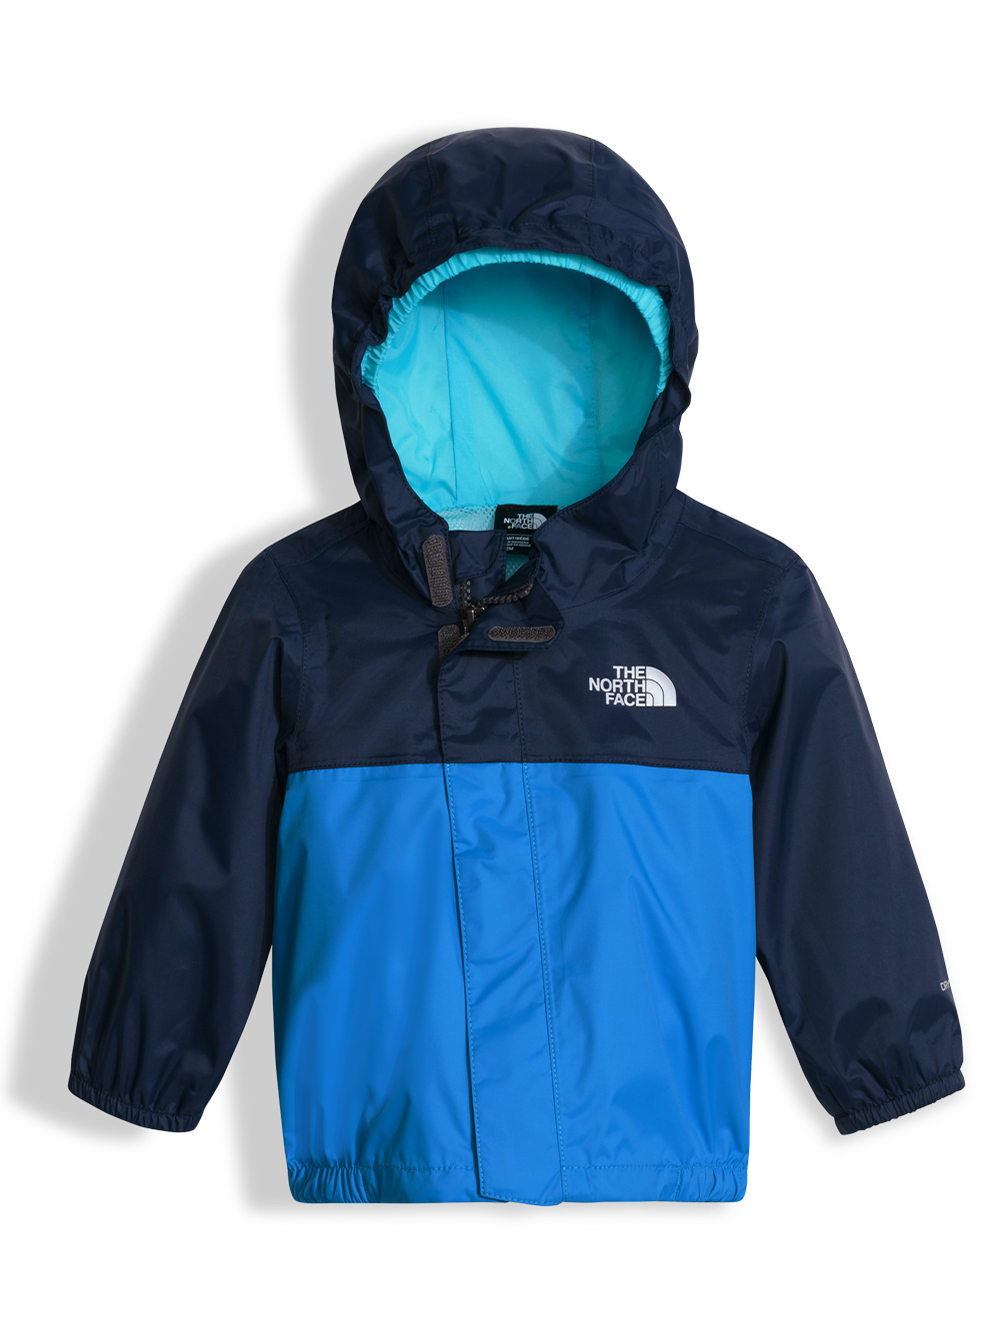 The North Face Baby Boys' Tailout Rain Jacket - clear lake blue, 6 - 12 months